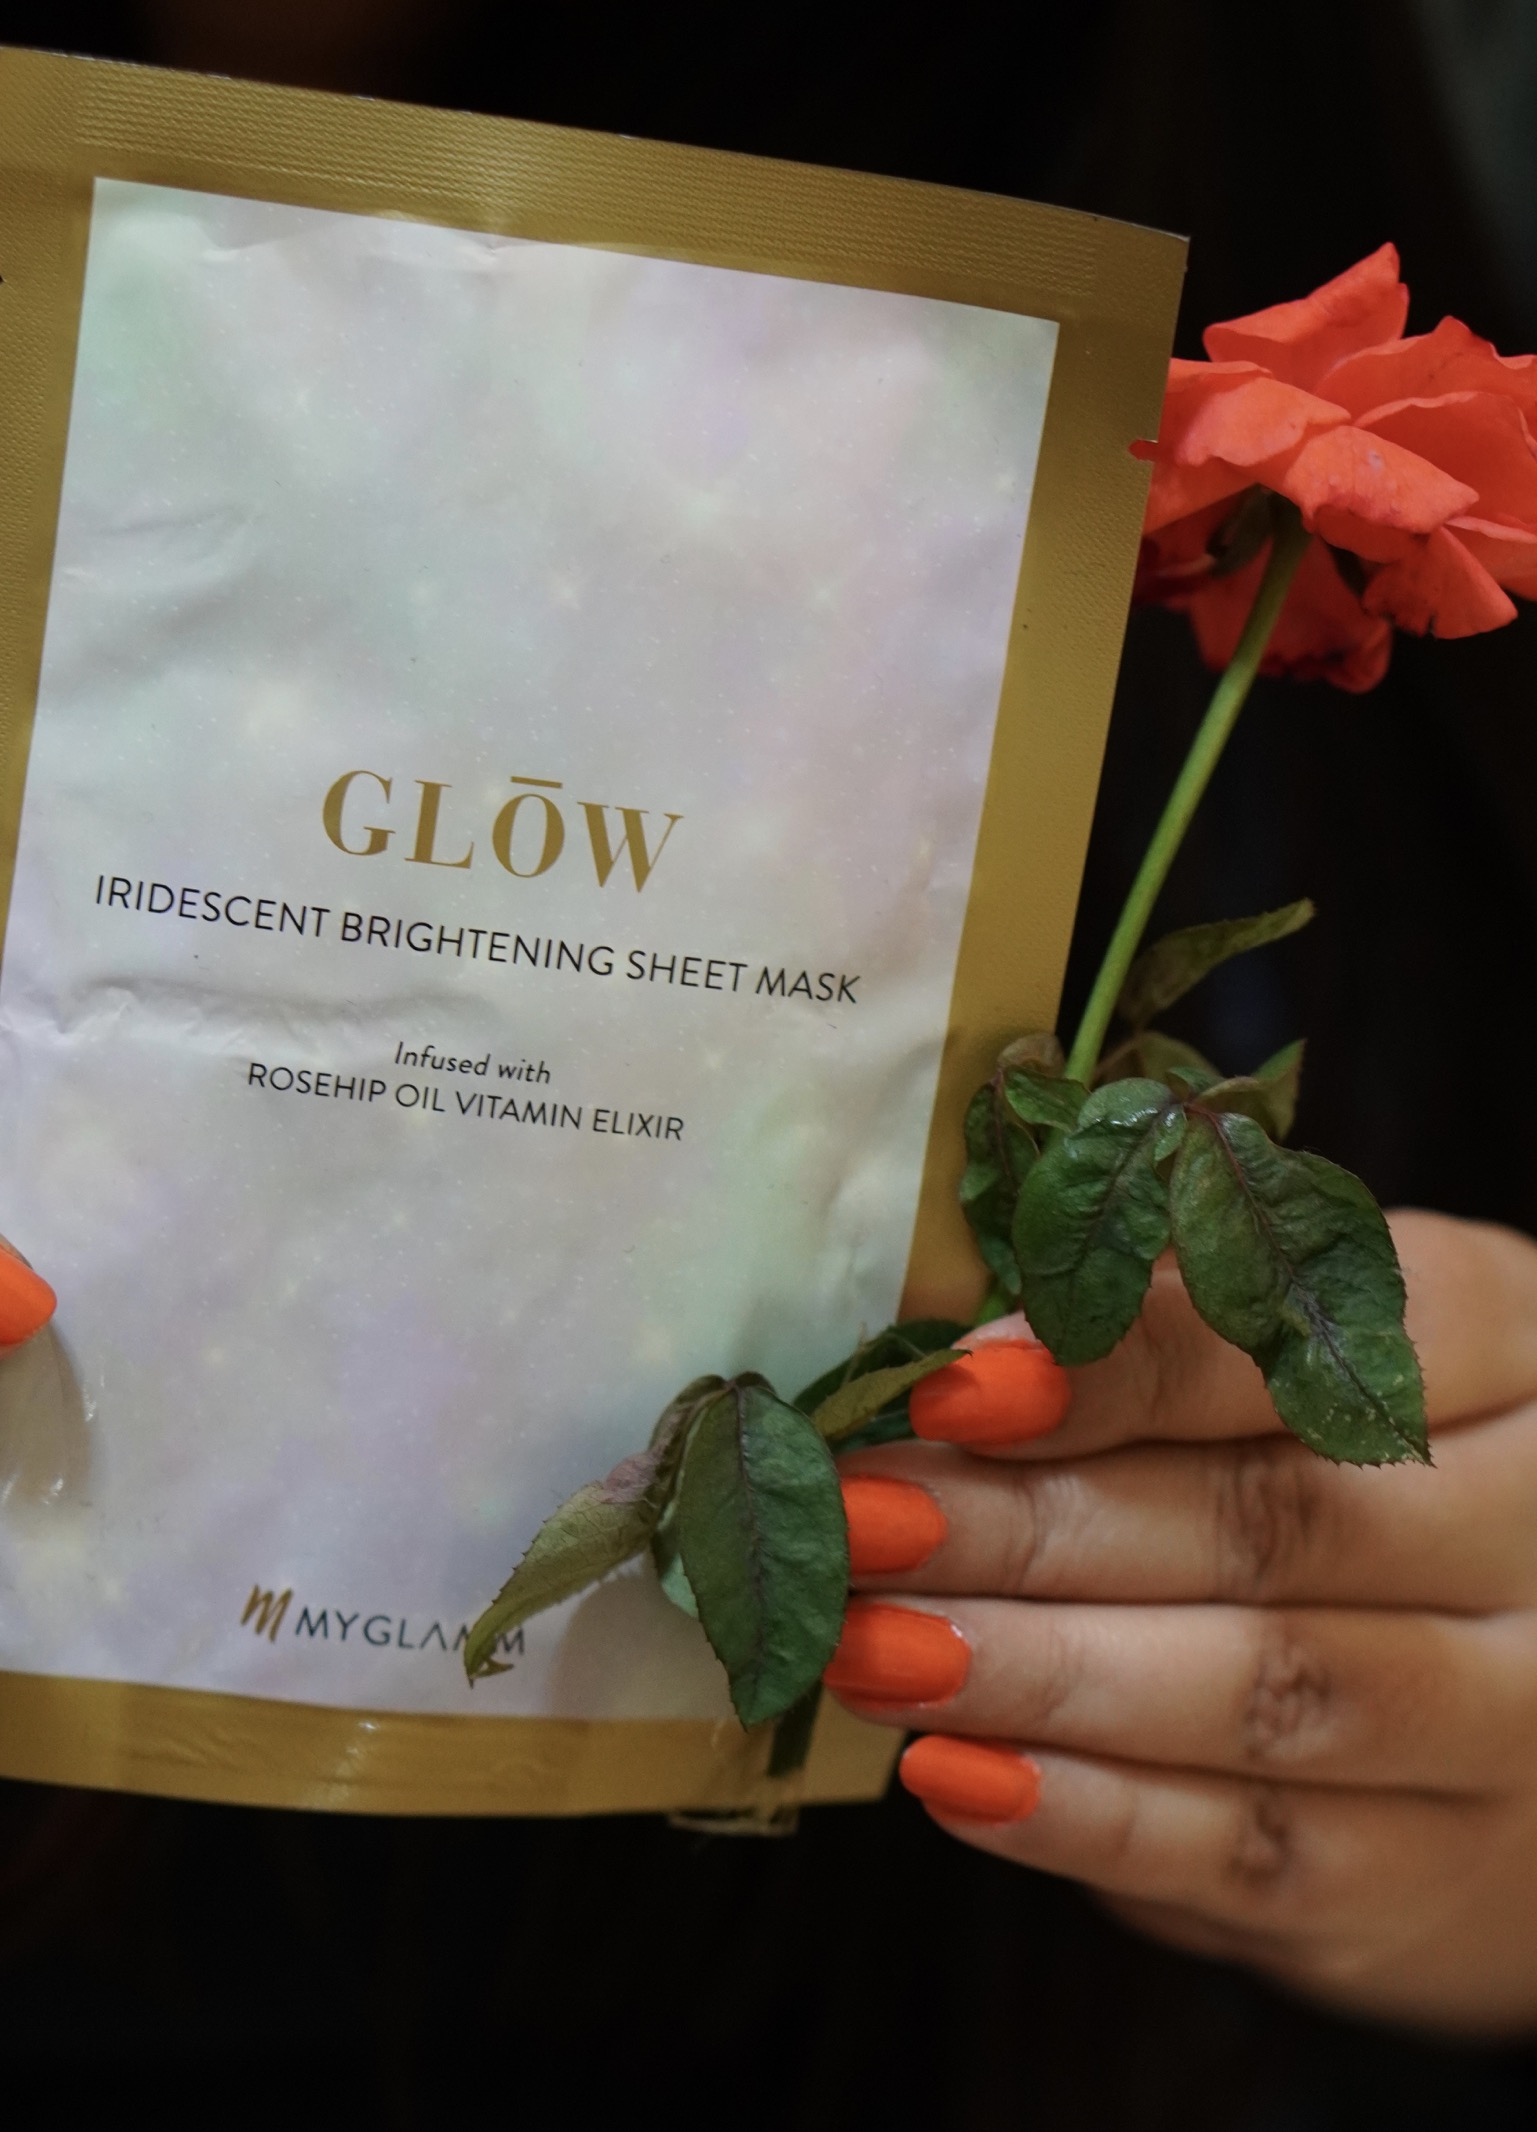 MyGlamm Glow Iridescent Brightening Sheet Mask Rosehip Extract Vitamin Elixir-Glow in NO Time-By lata_